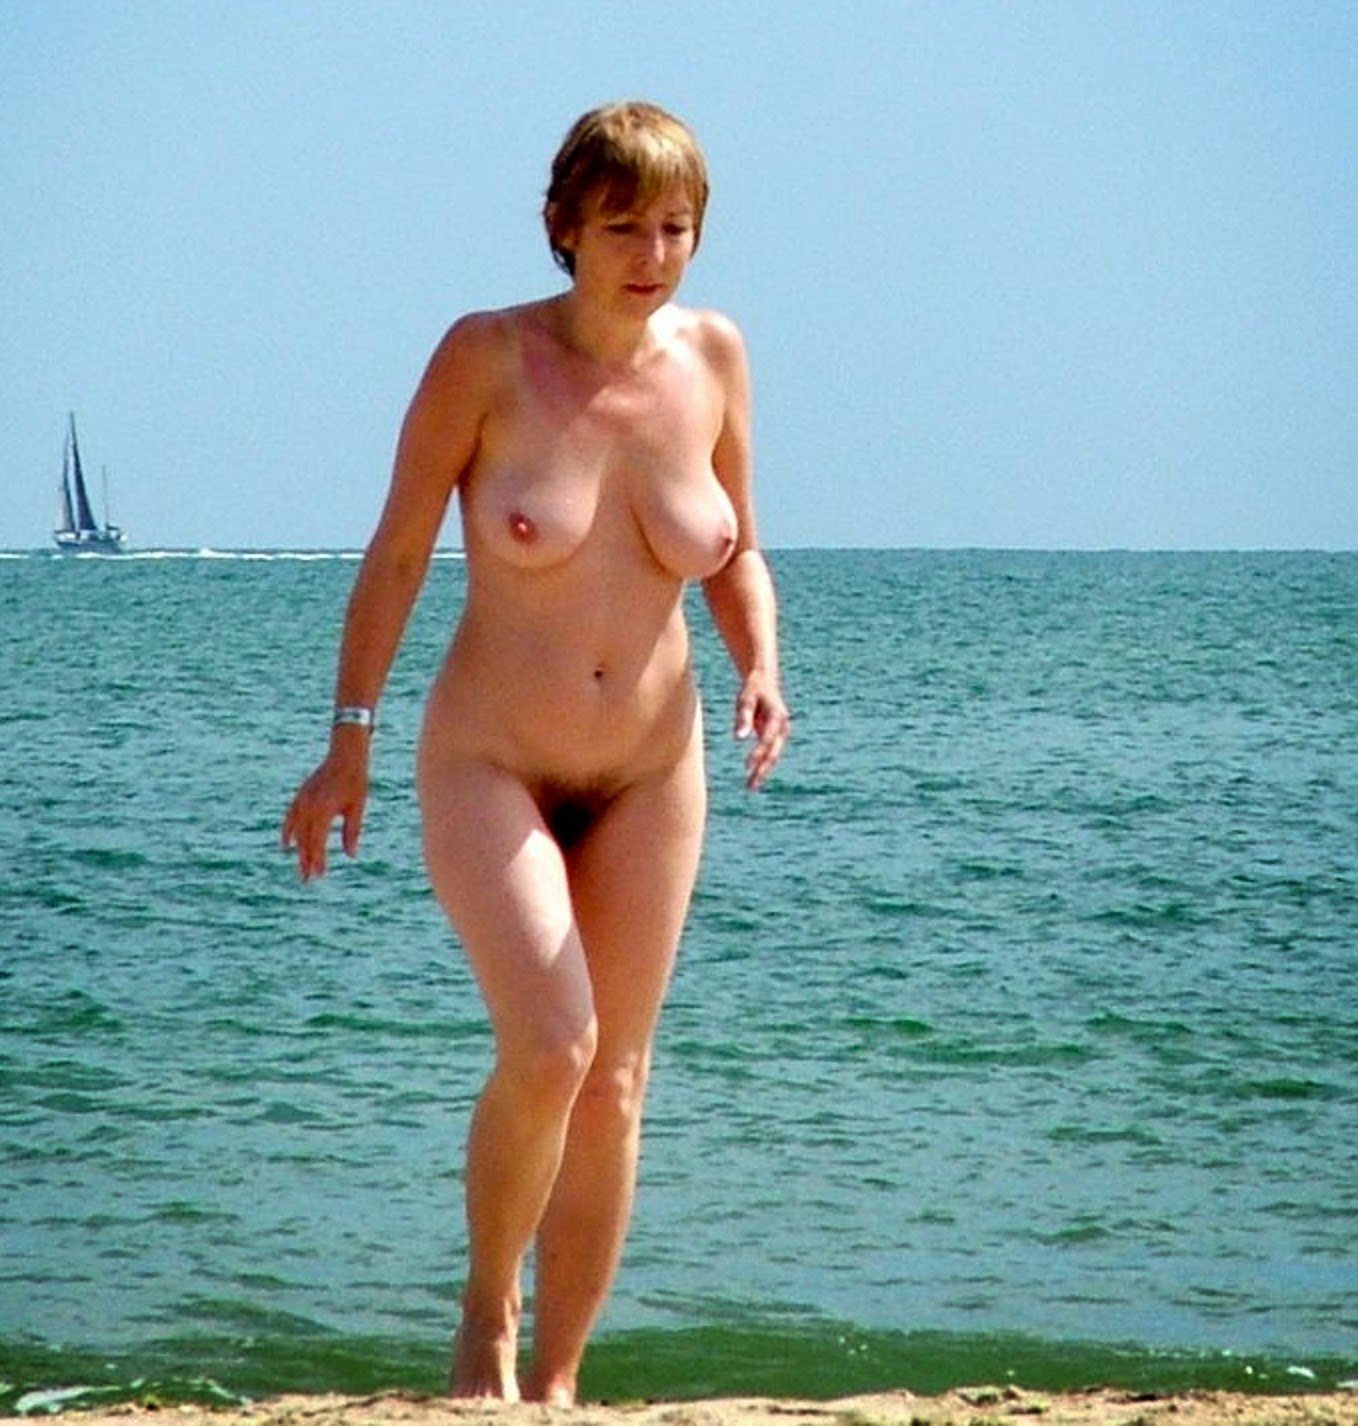 public nudity project studland